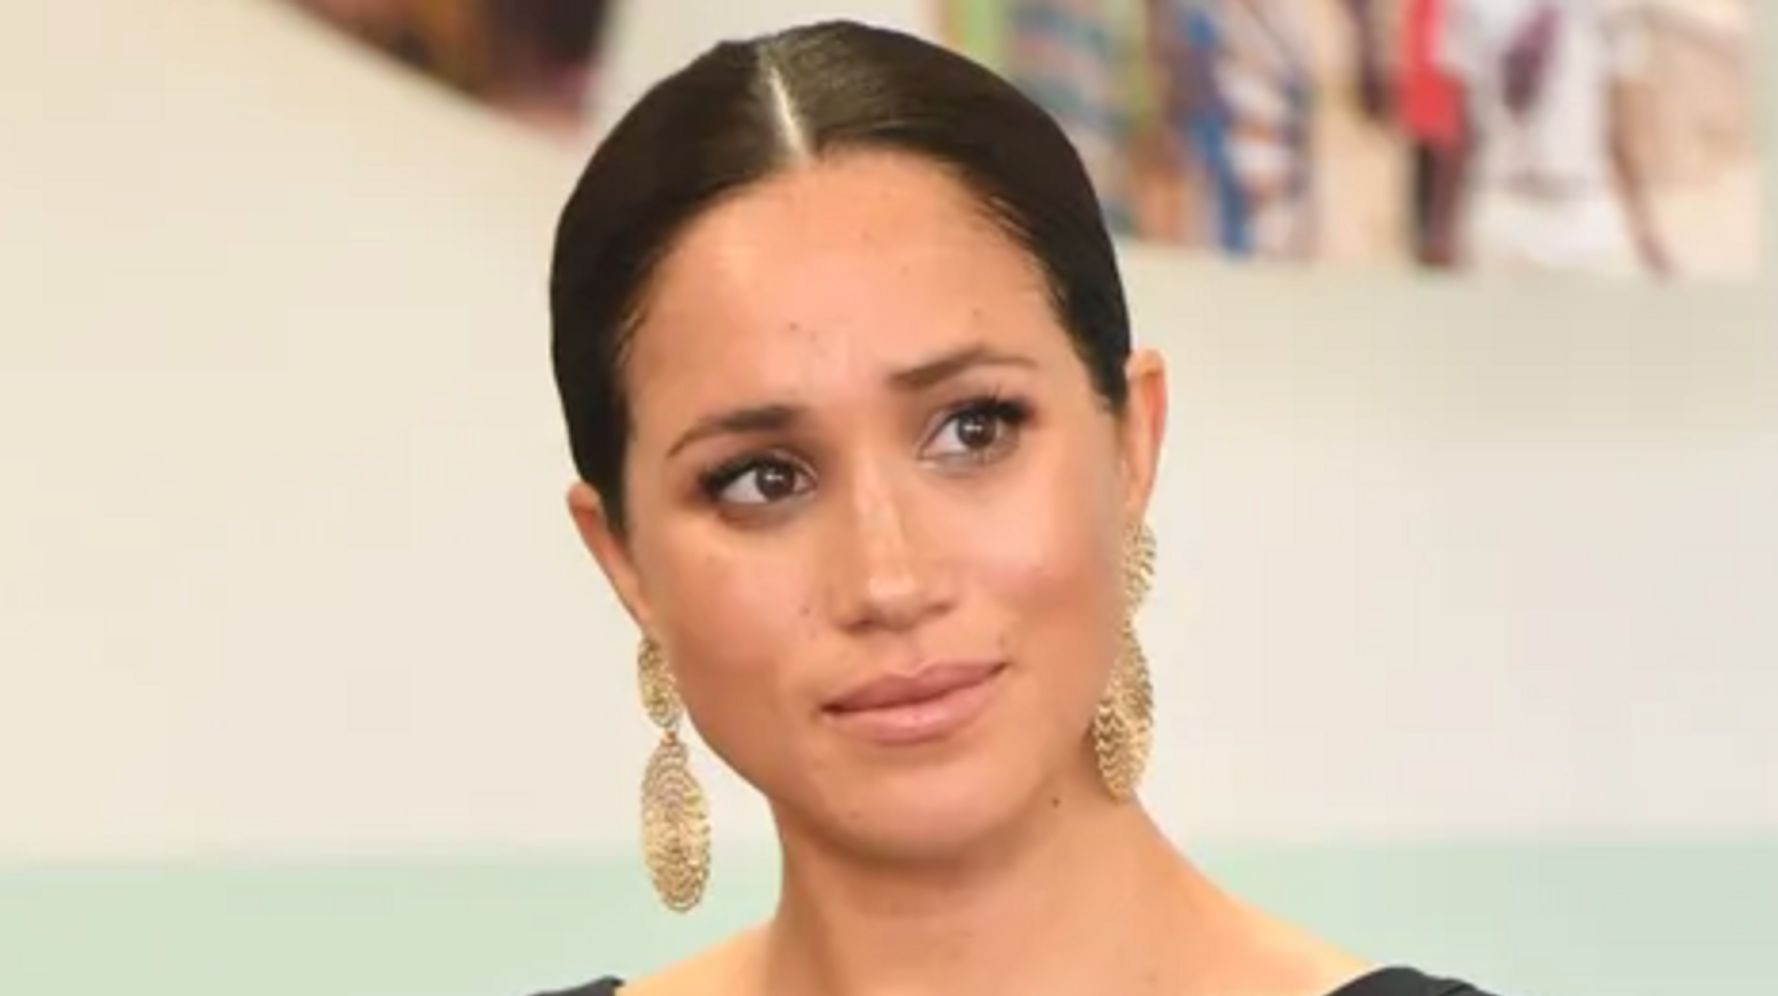 Twitter Asks Why The Royal Family Is Investigating Meghan Markle, Not Prince Andrew